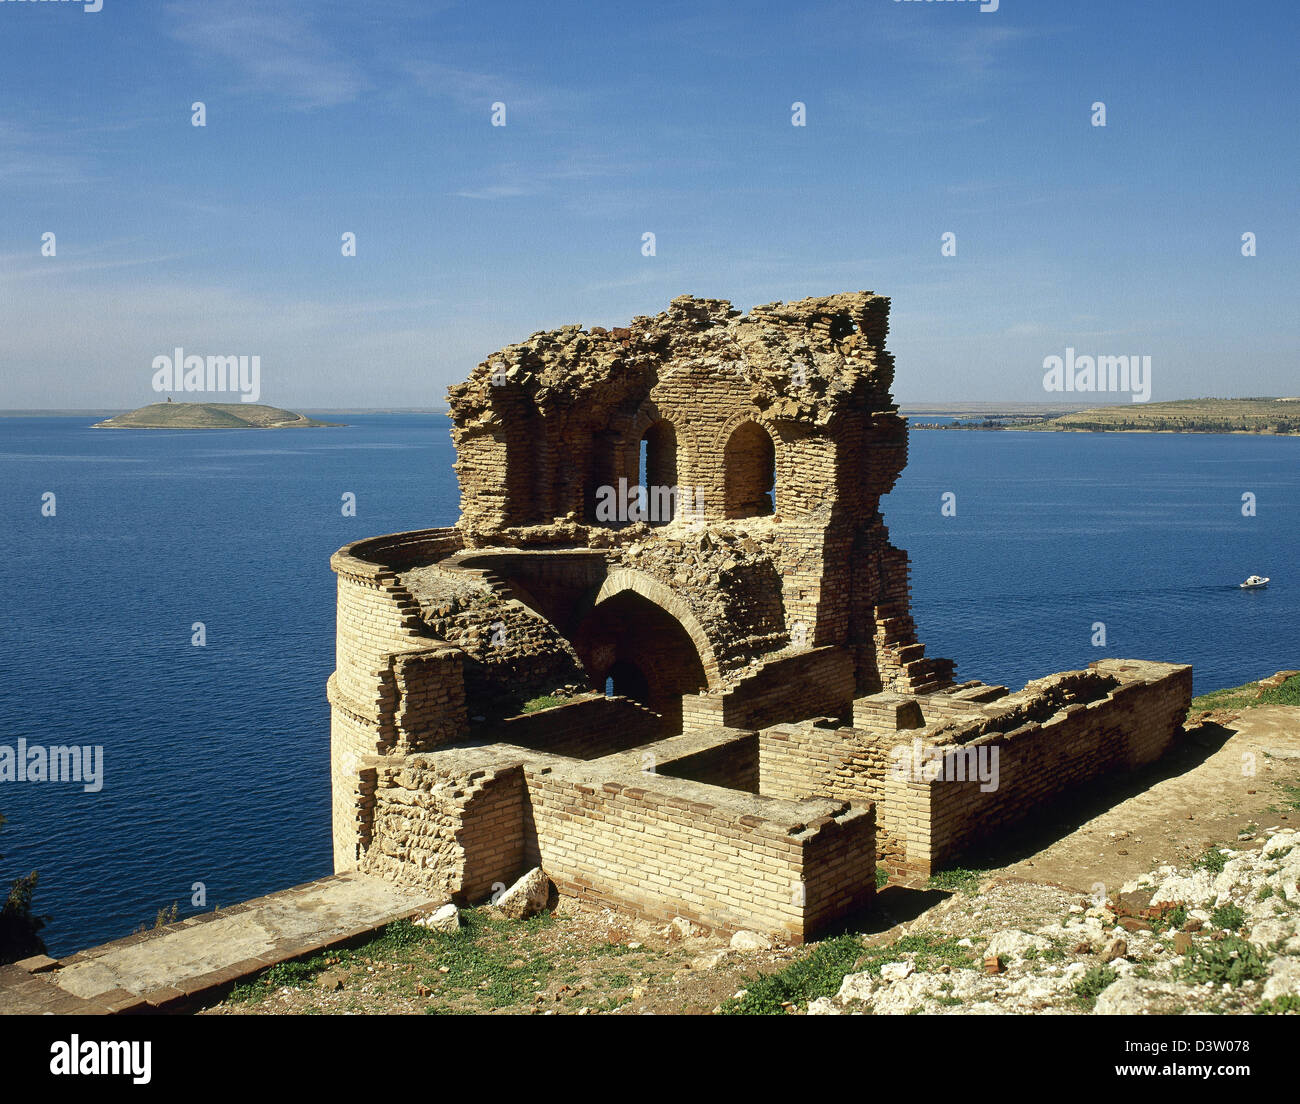 Syria. Defensive tower of the Qalat Jabar, arab fortress on the banks of Lake Assab. Near Ar Raqqah. - Stock Image